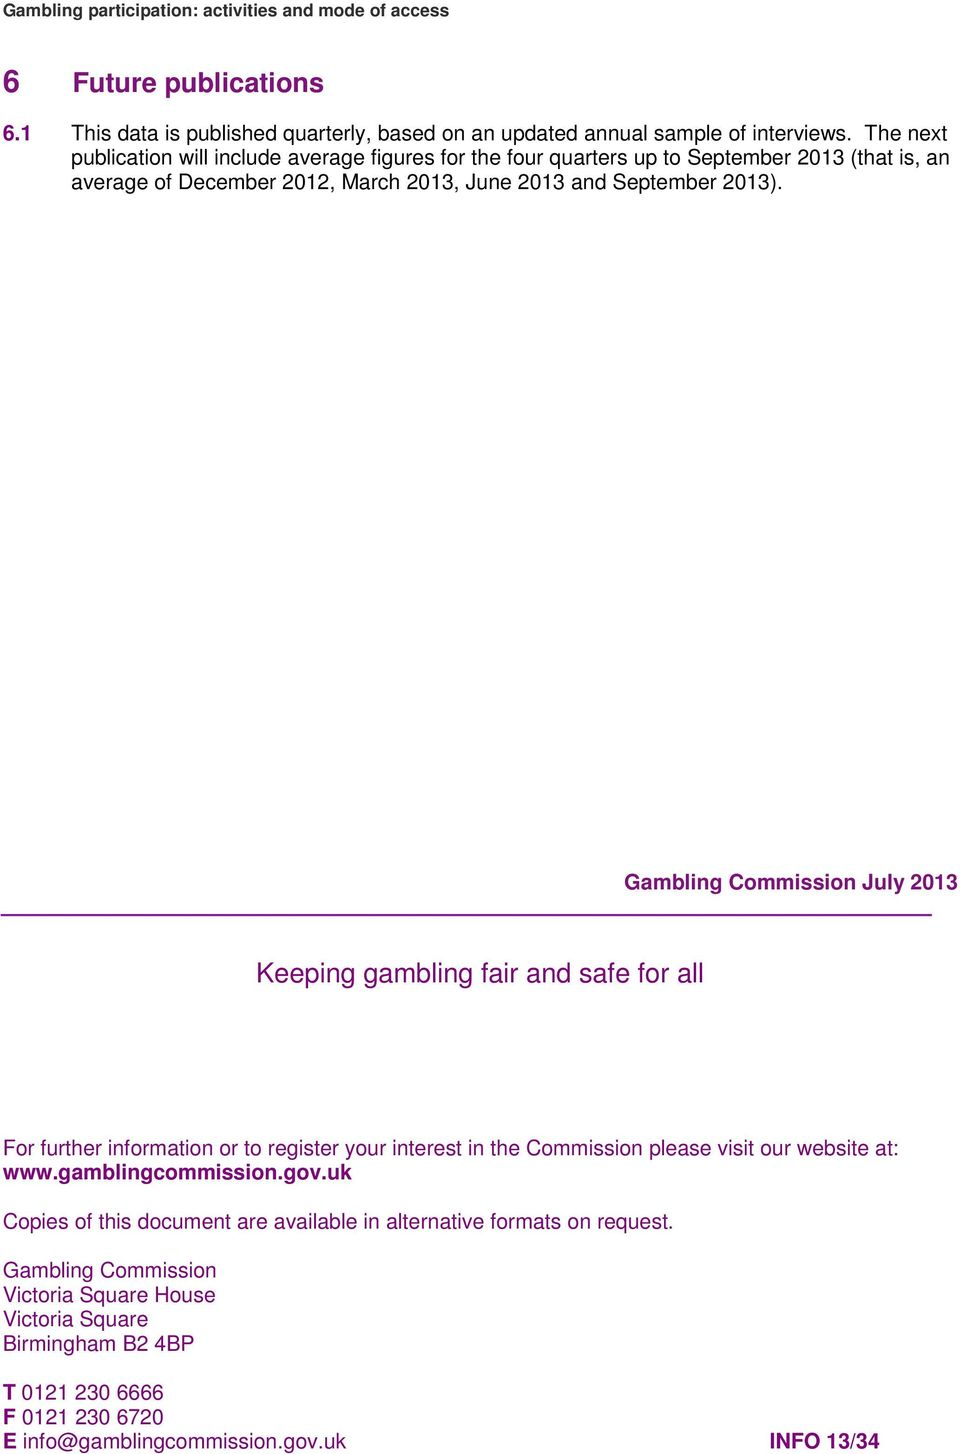 Gambling Commission July 2013 Keeping gambling fair and safe for all For further information or to register your interest in the Commission please visit our website at: www.